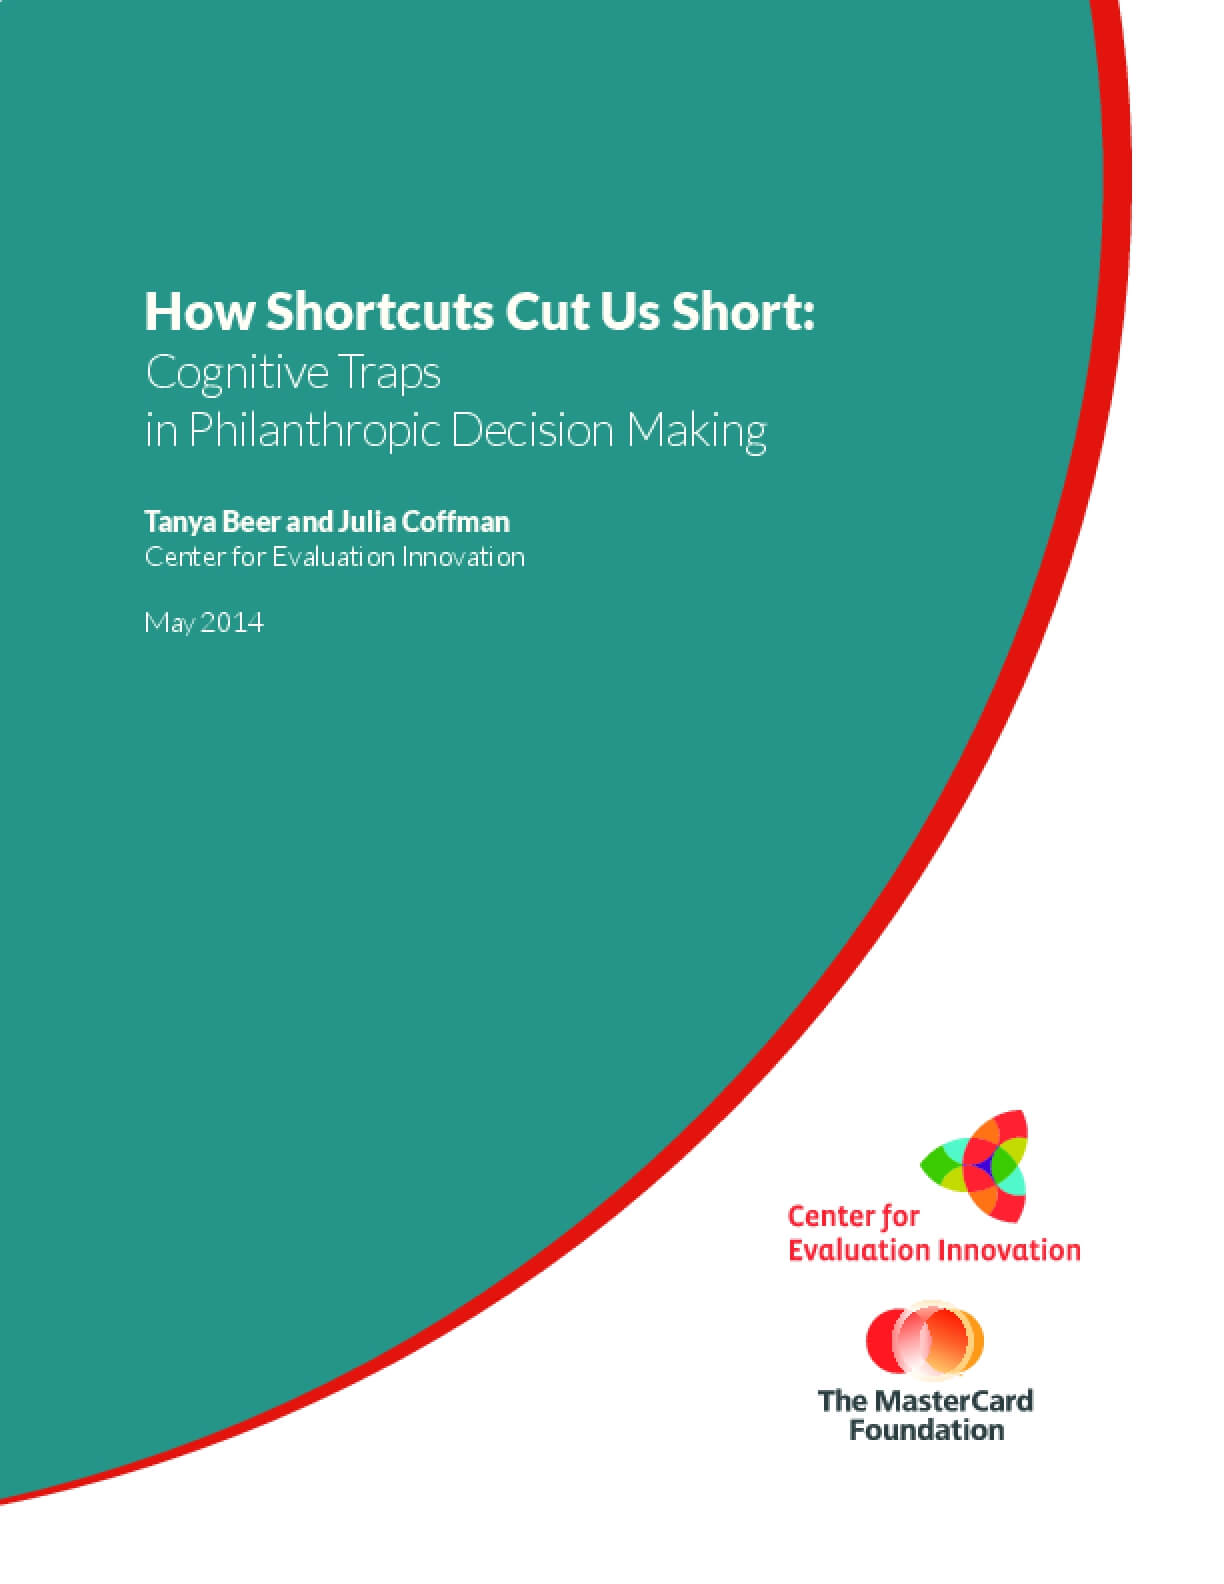 How Shortcuts Cut Us Short: Cognitive Traps in Philanthropic Decision Making